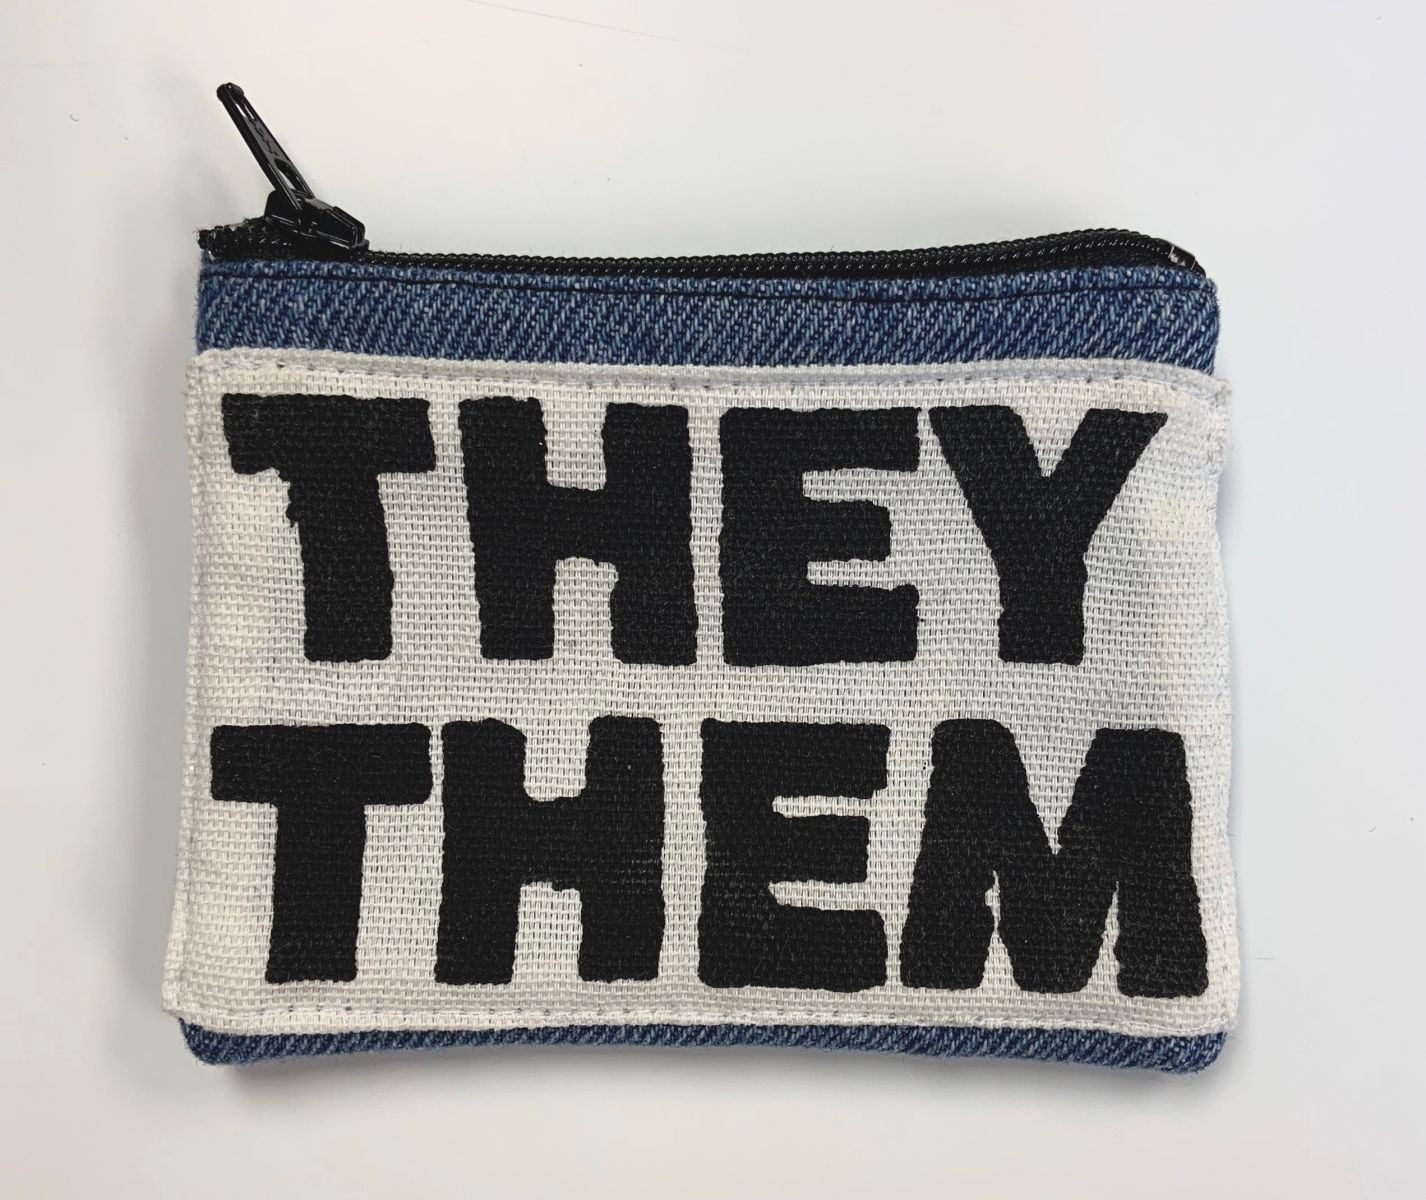 """Handmade blue denim zippered coin purse. A white stretch of fabric across the purse reads, """"THEY / THEM"""" in bold black lettering."""